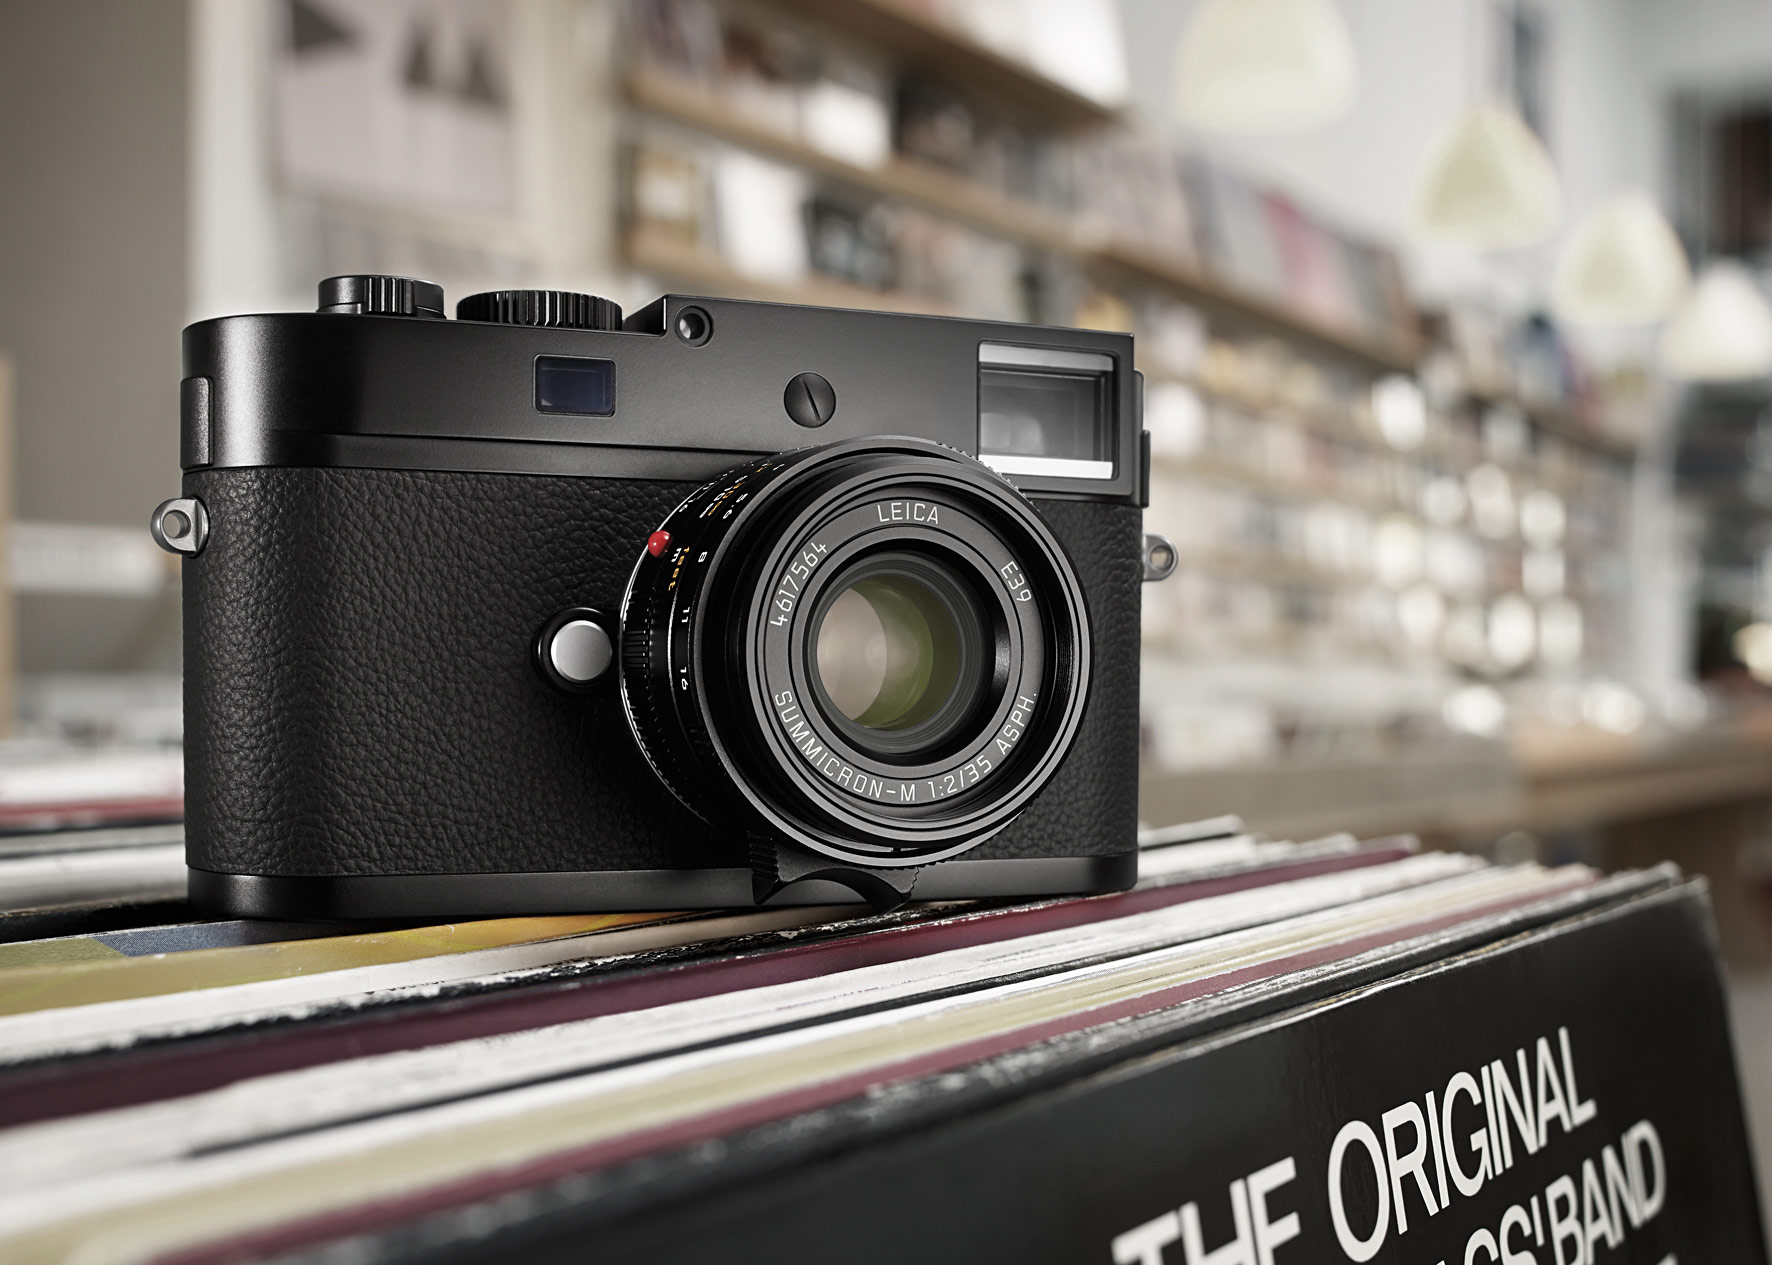 The New Leica M-D Focuses On The Absolute Essentials Of Photography